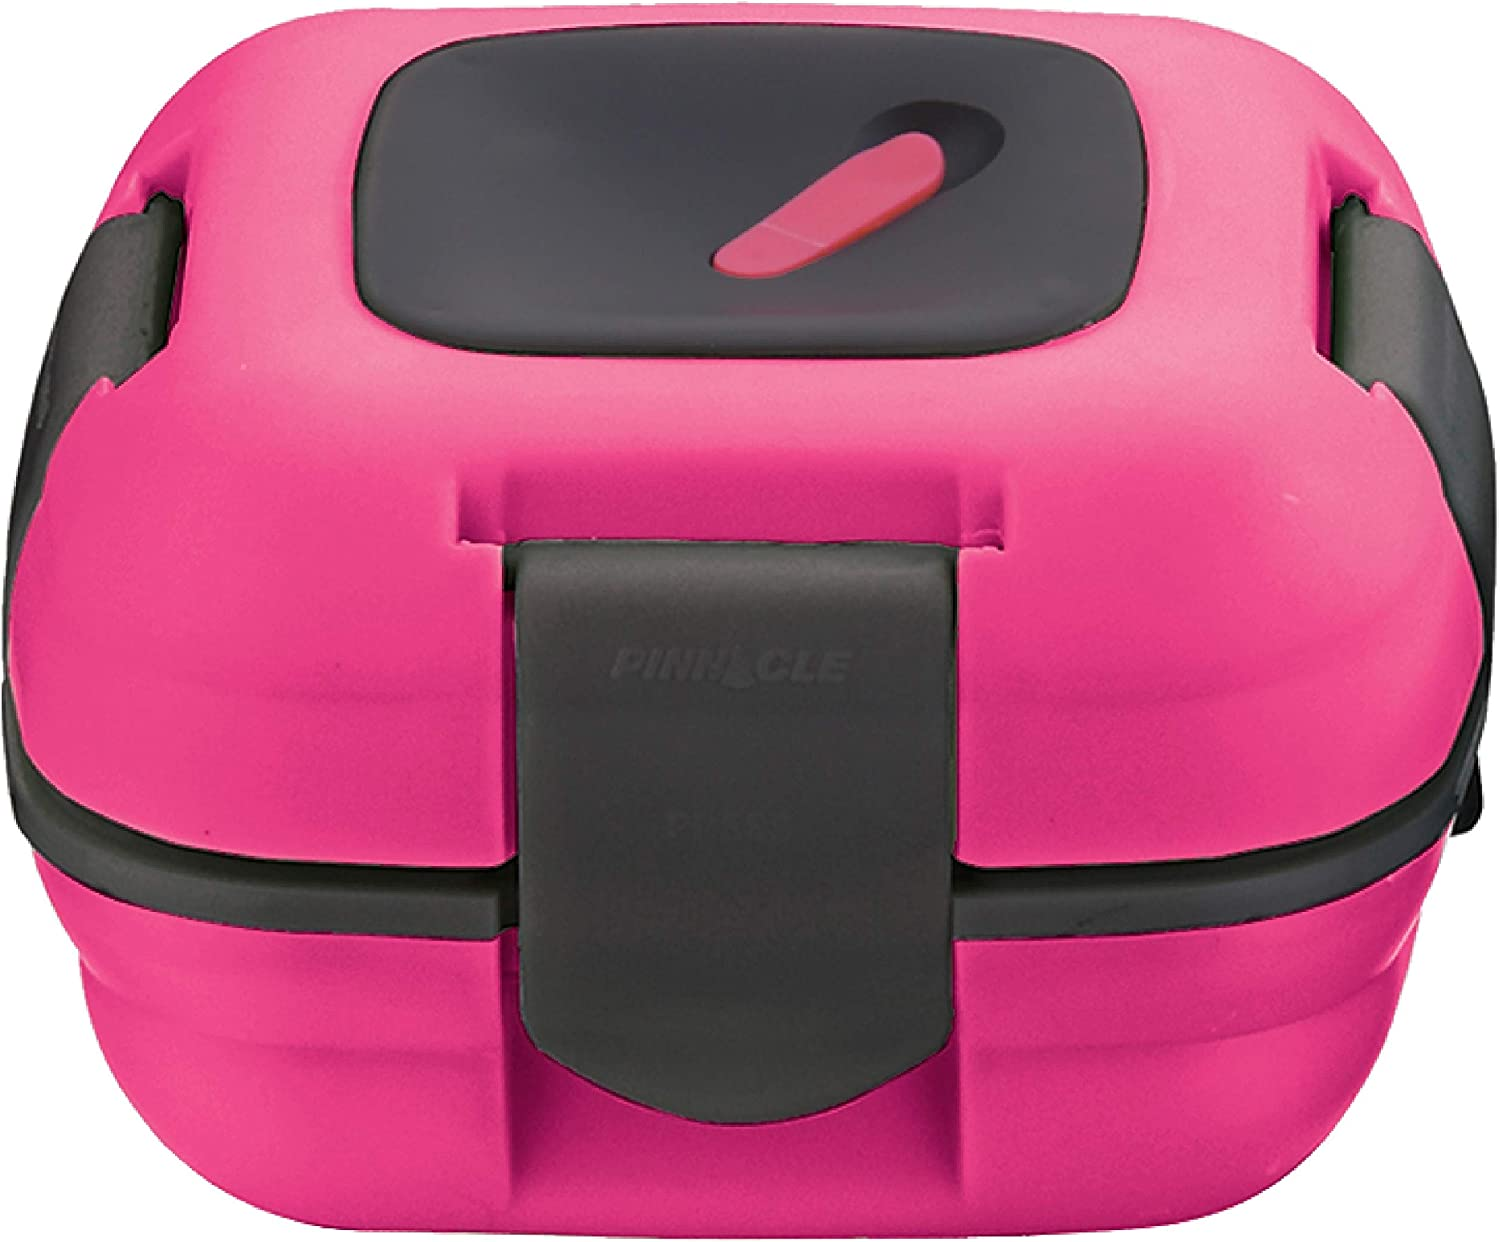 Lunch Box ~ Pinnacle Insulated Leak Proof Lunch Box for Adults and Kids - Thermal Lunch Container With NEW Heat Release Valve, 16 oz (Pink)